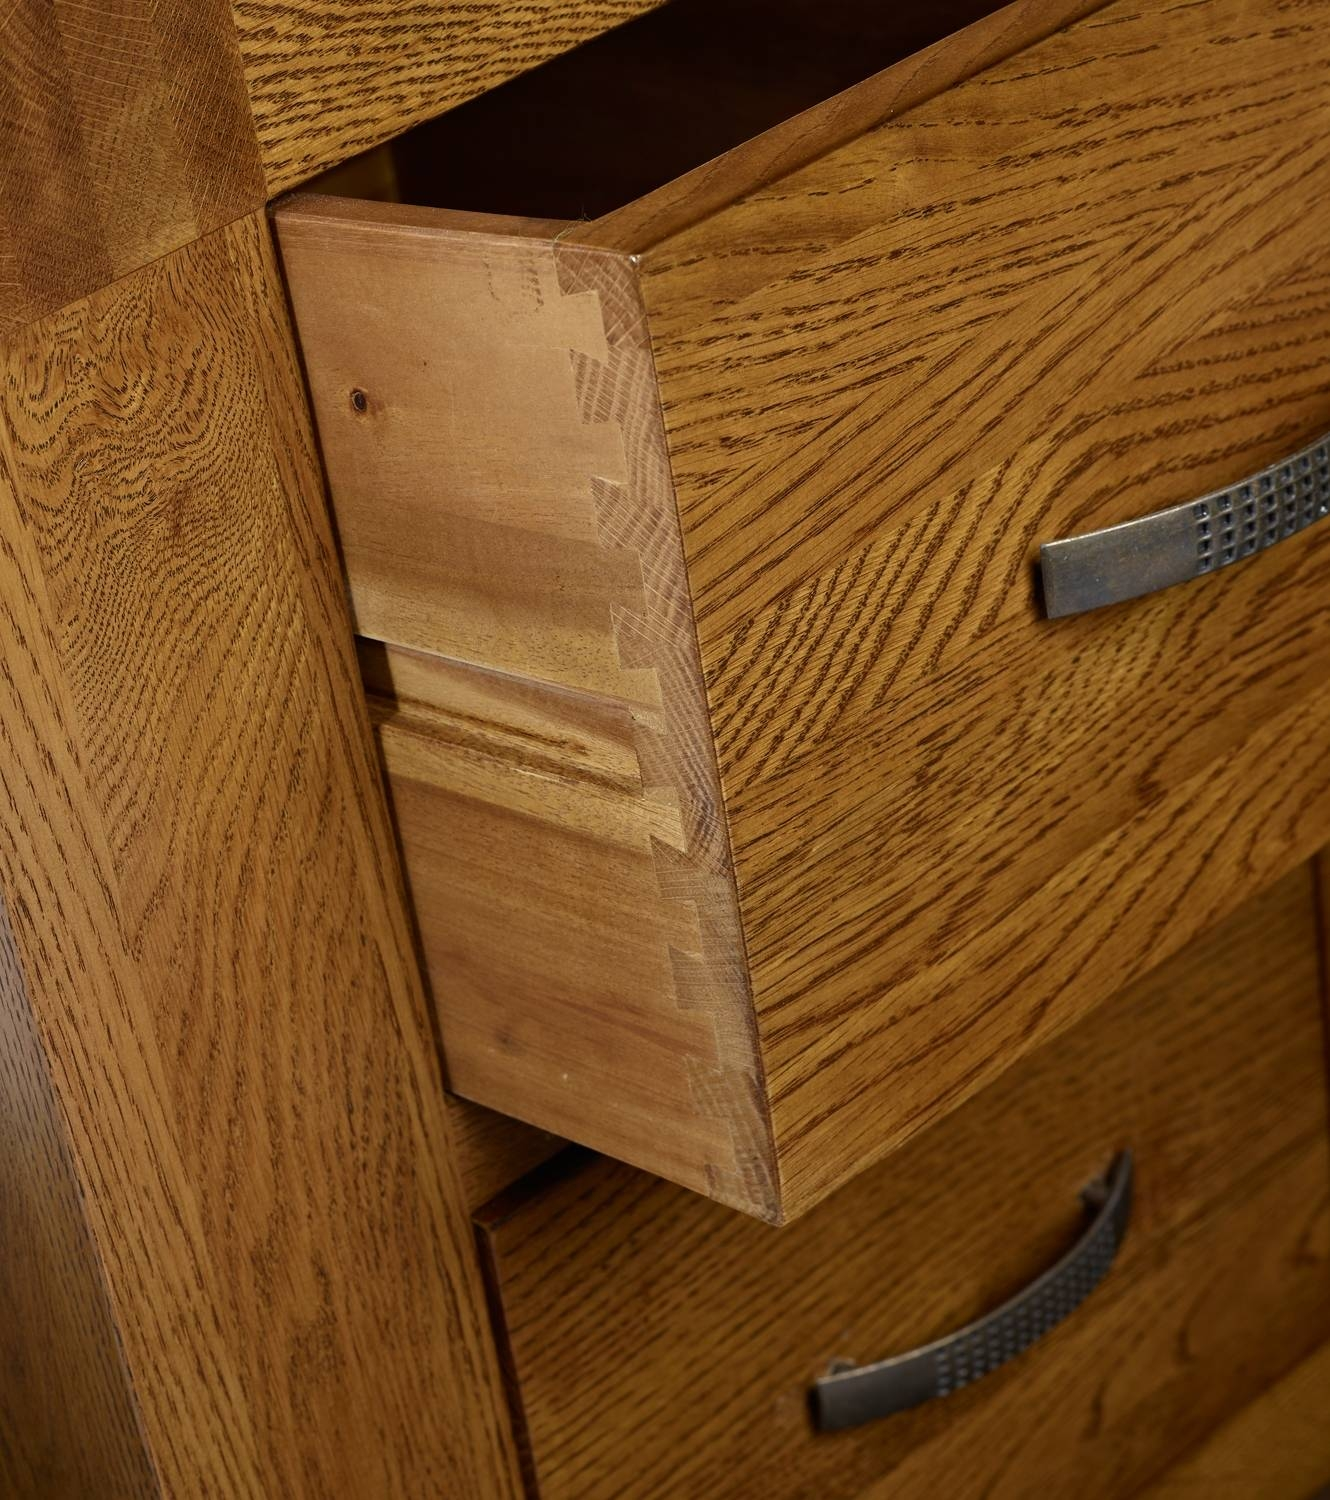 Santana Reclaimed Oak Close Up Drawer Throughout Reclaimed Oak Sideboards (View 14 of 15)